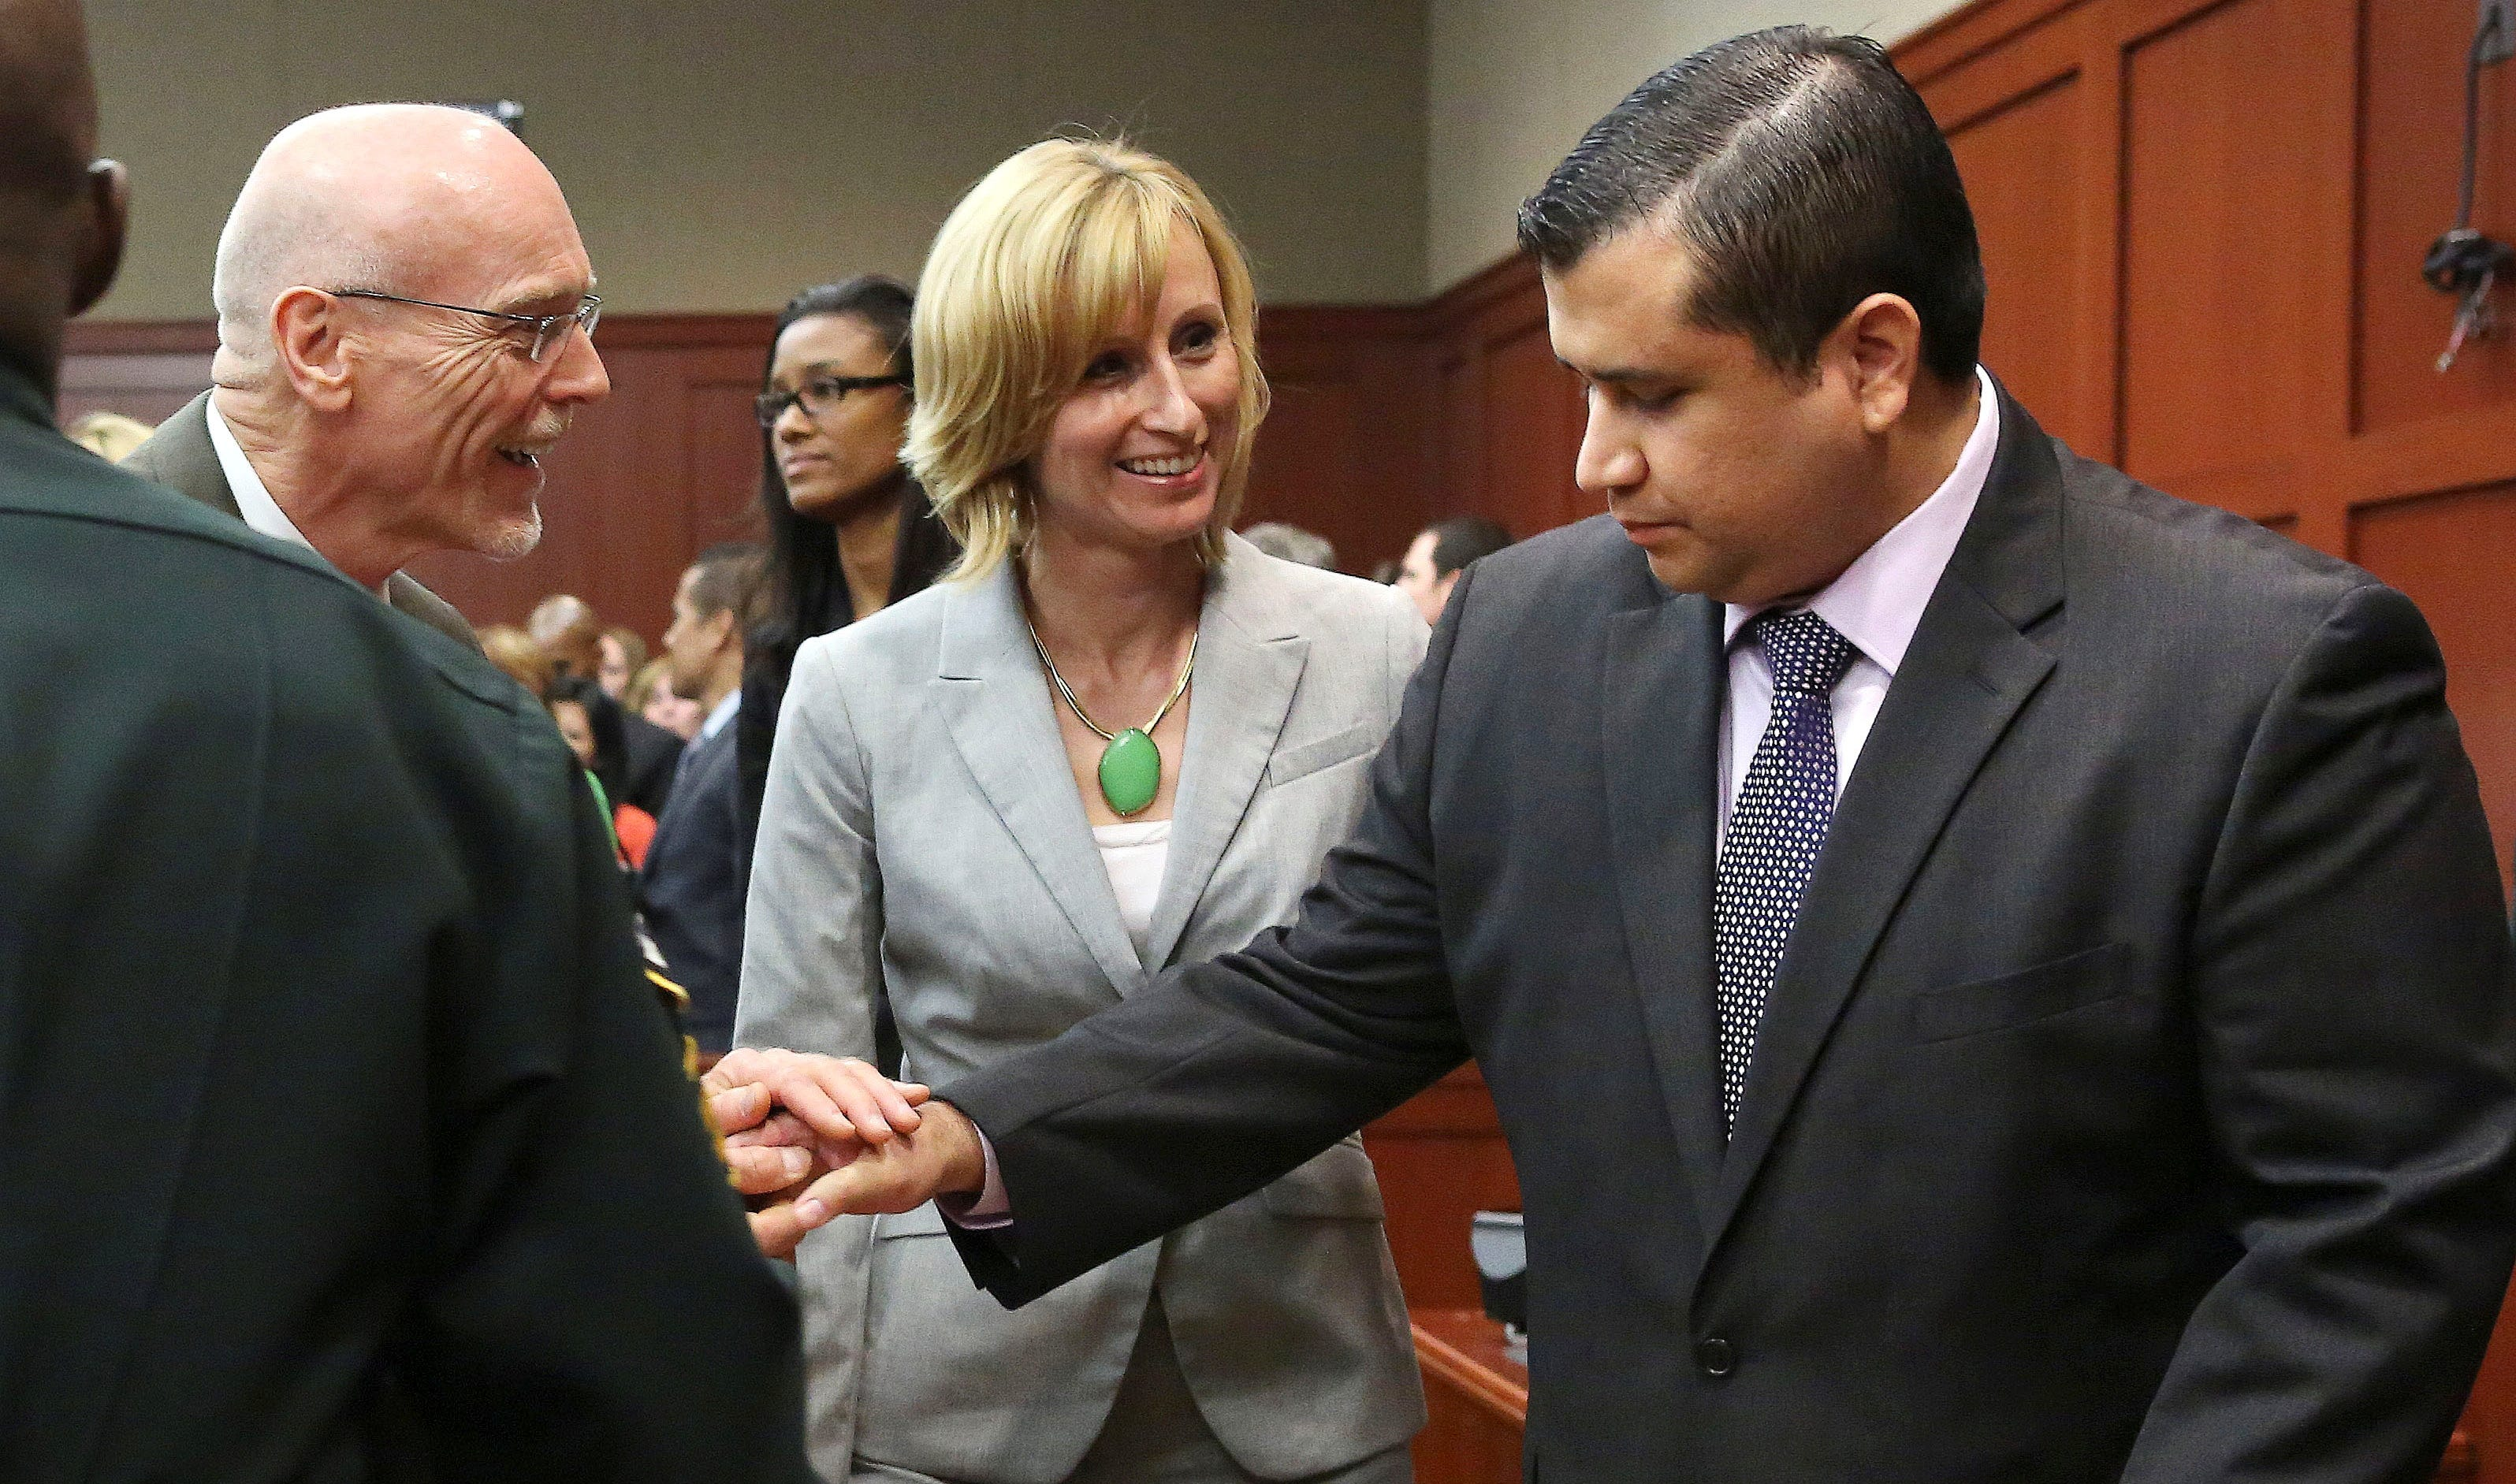 Juror Zimmerman Should Have Stayed In His Car